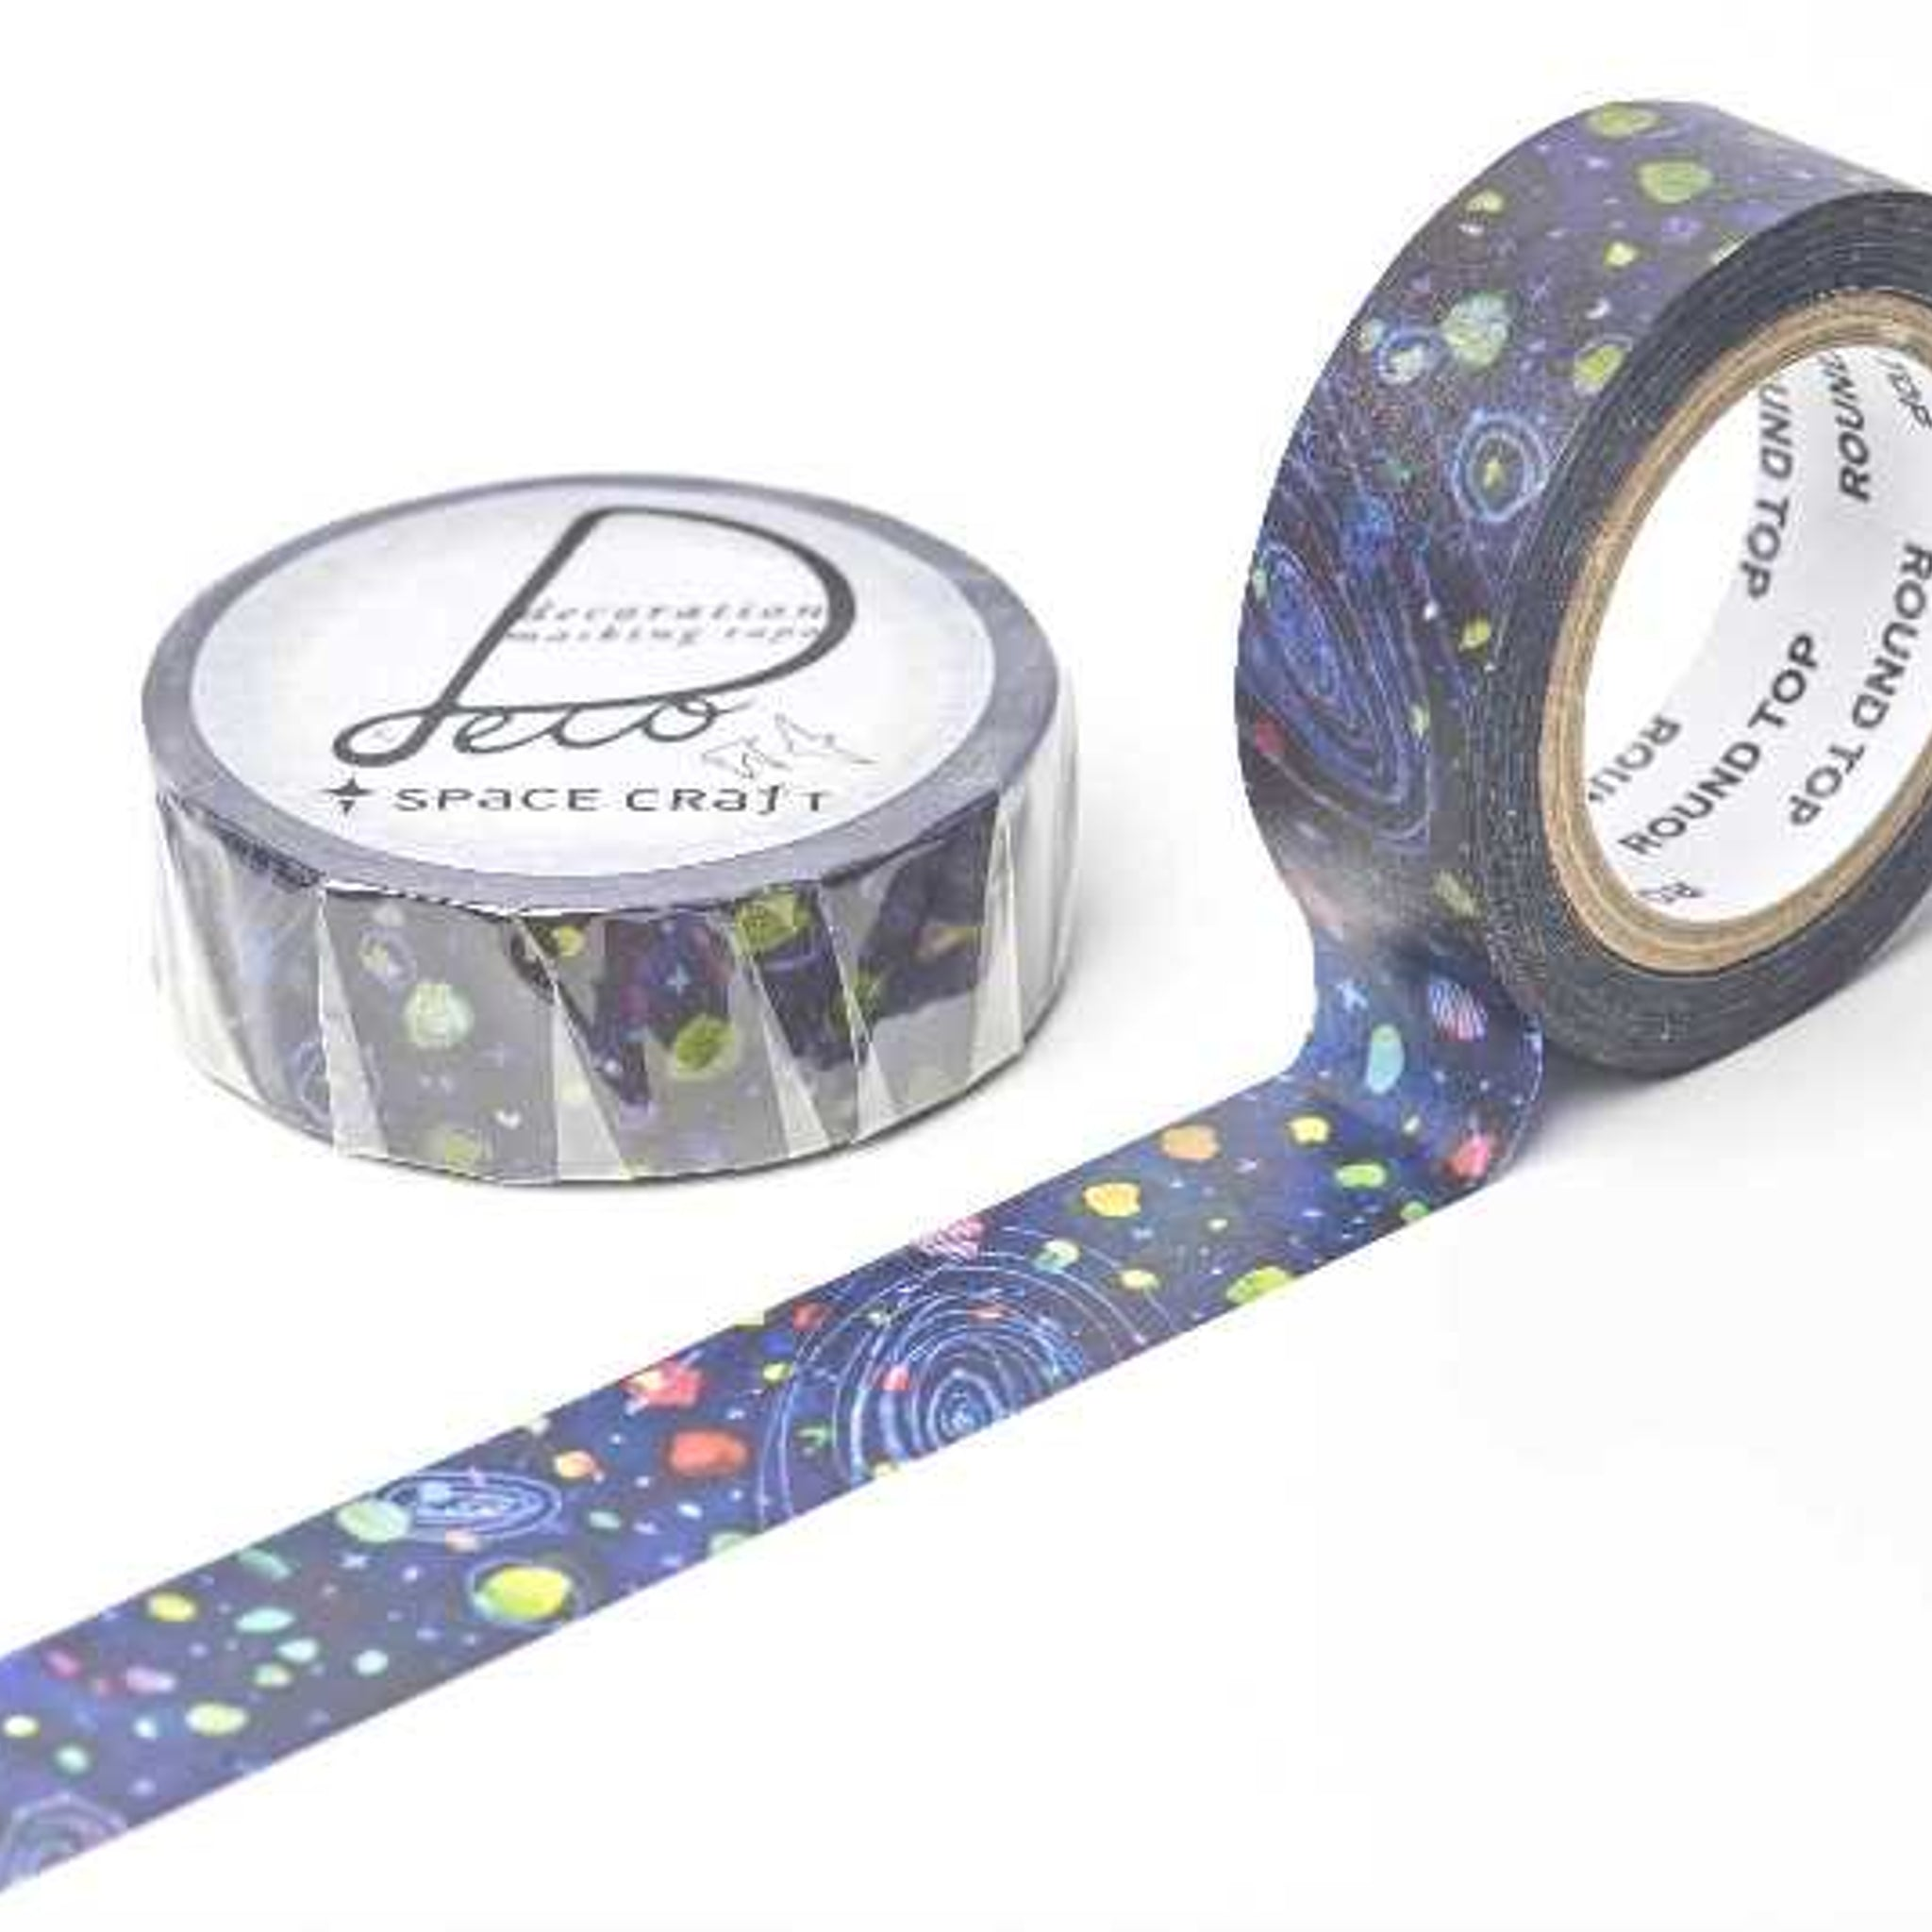 Round Top x Space Craft Washi Tape Space